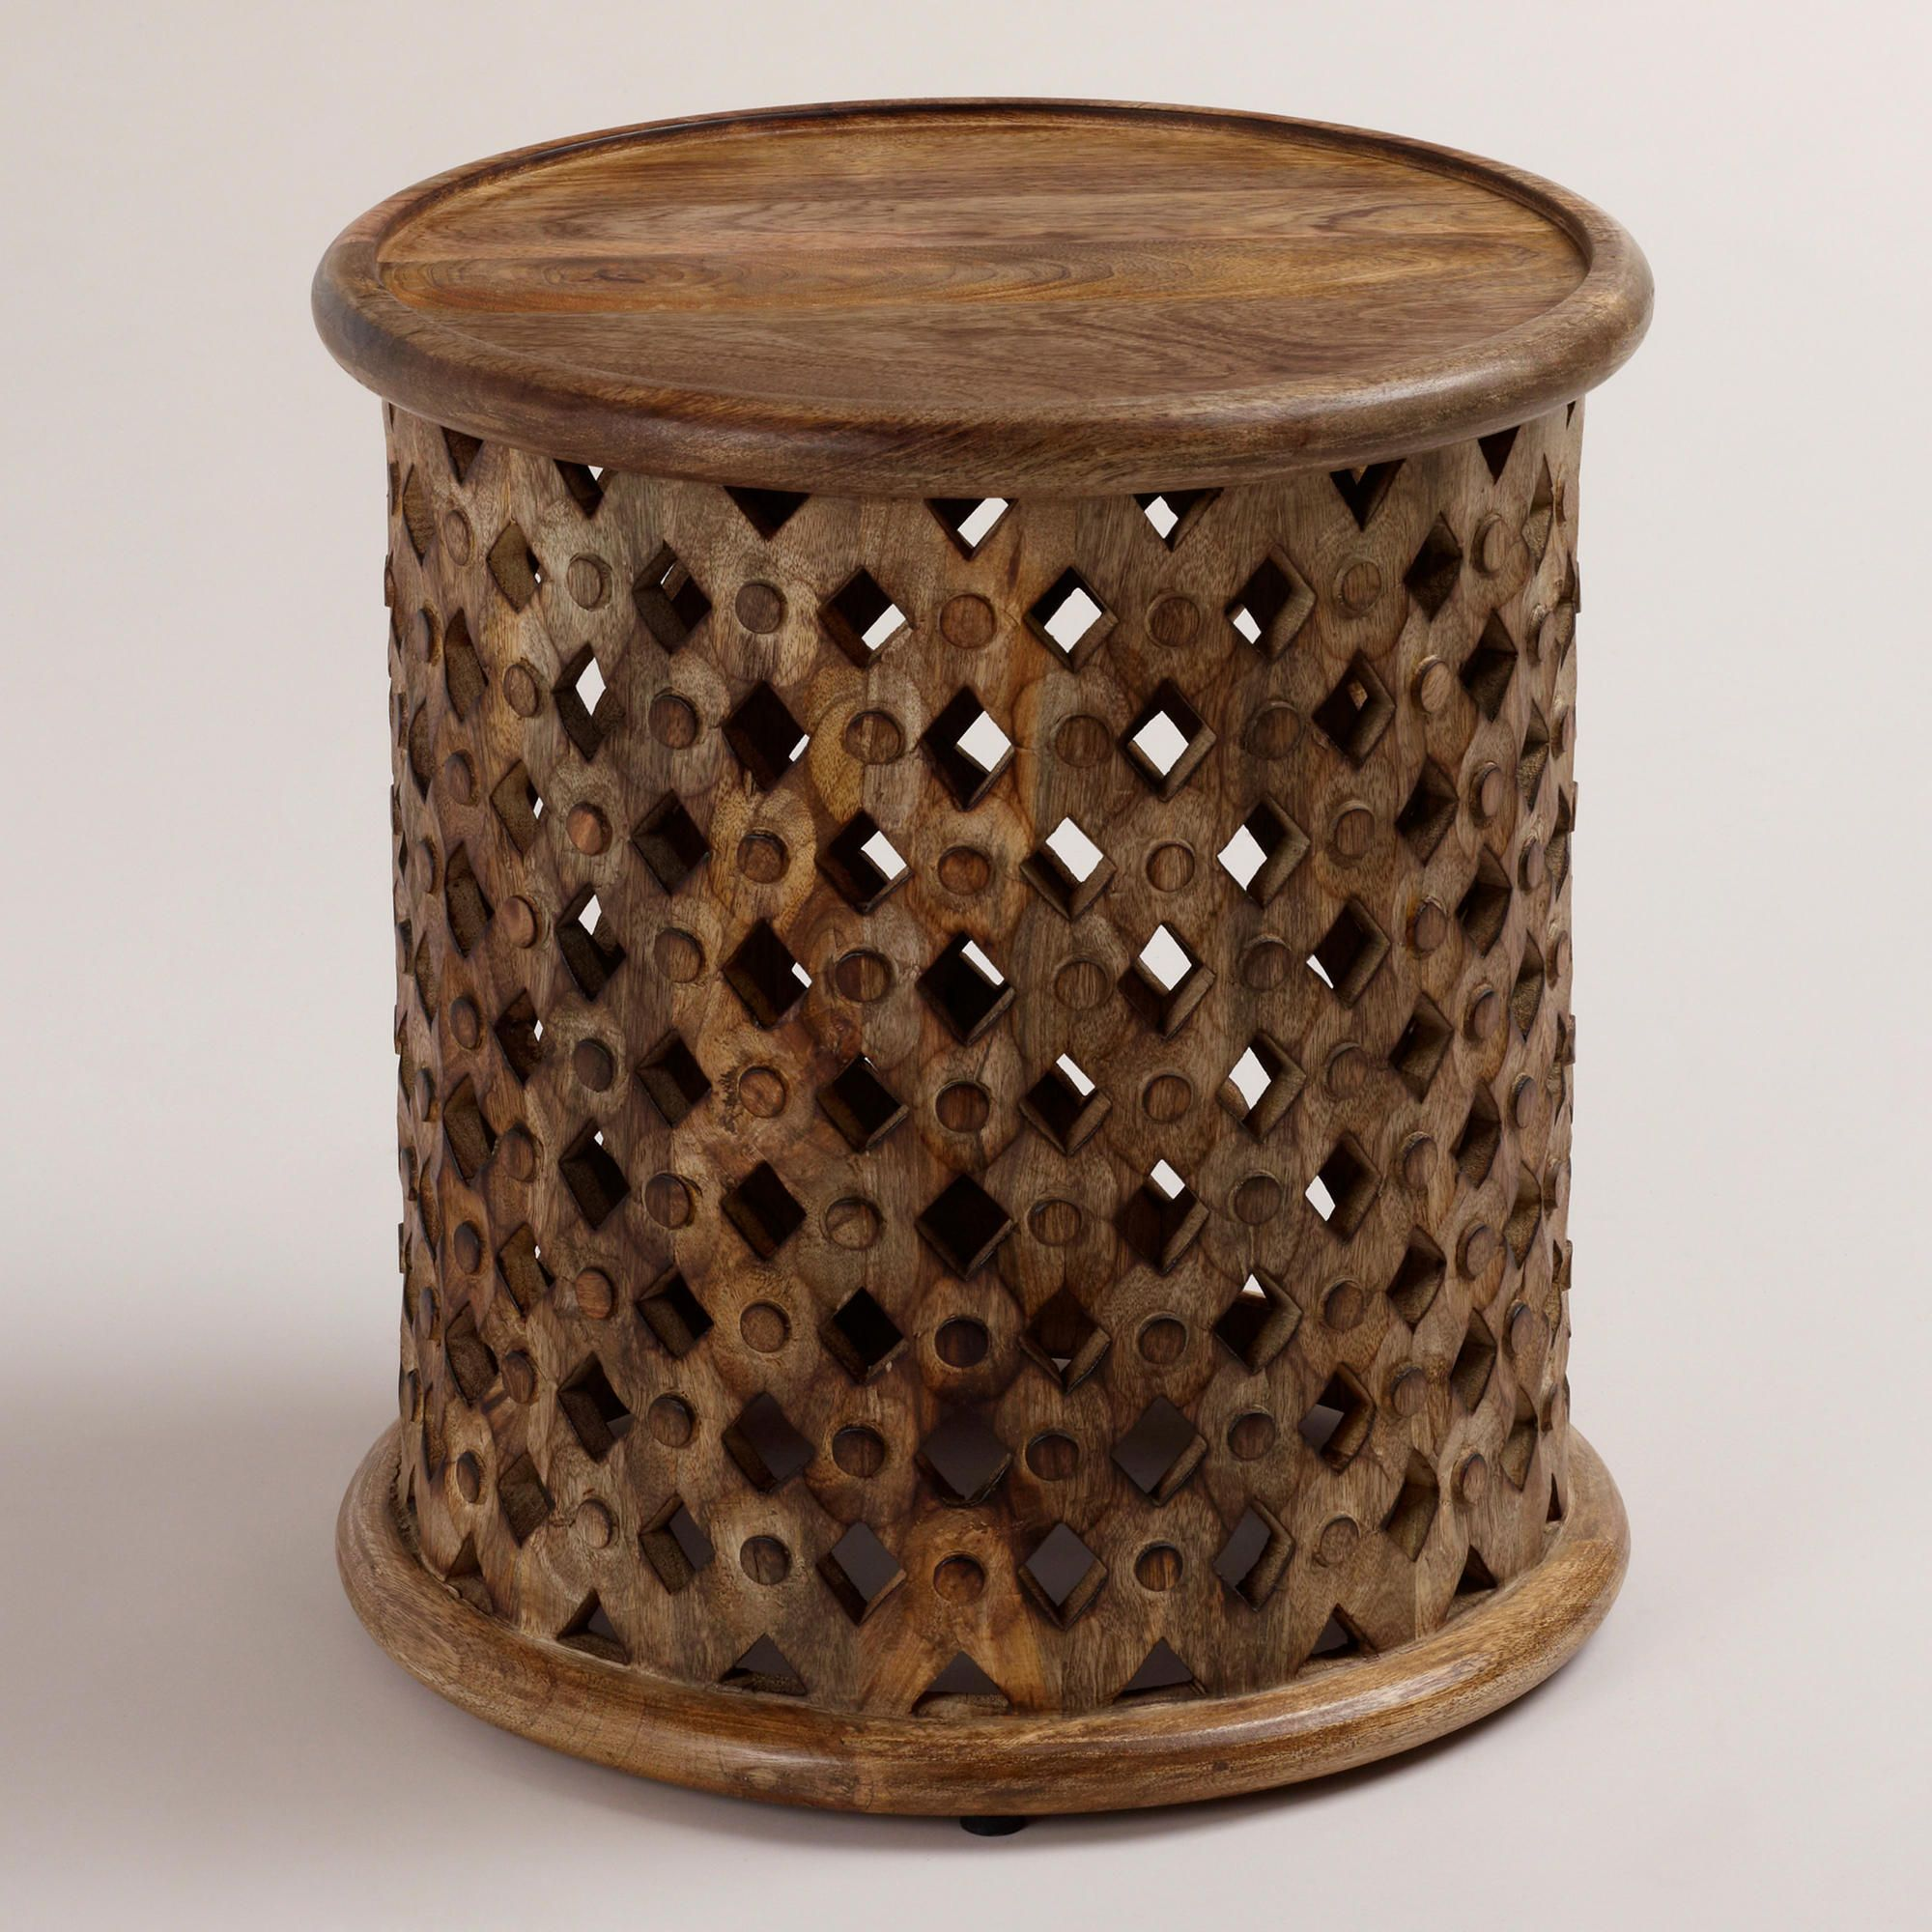 tribal carved wood accent table world market this would base target look great bedroom next the chair high top dining room sets modern nest coffee tables chest with drawers and